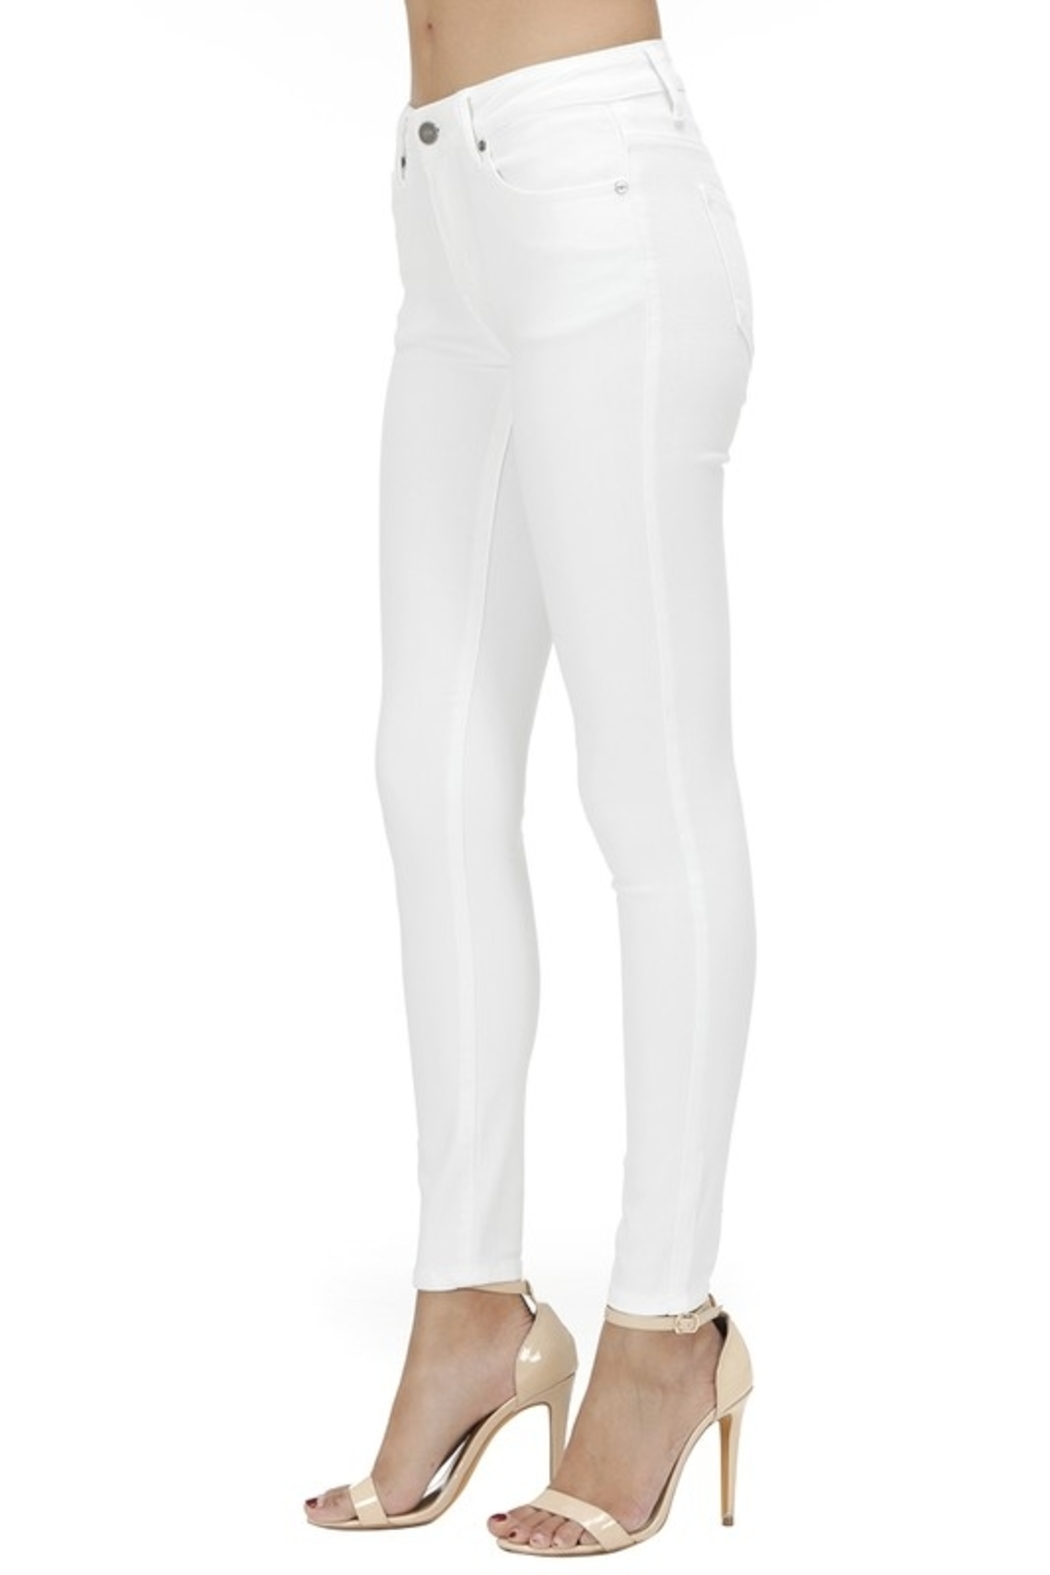 KanCan Mid Rise Ankle Skinny jean (KC7085WT) - Side Cropped Image